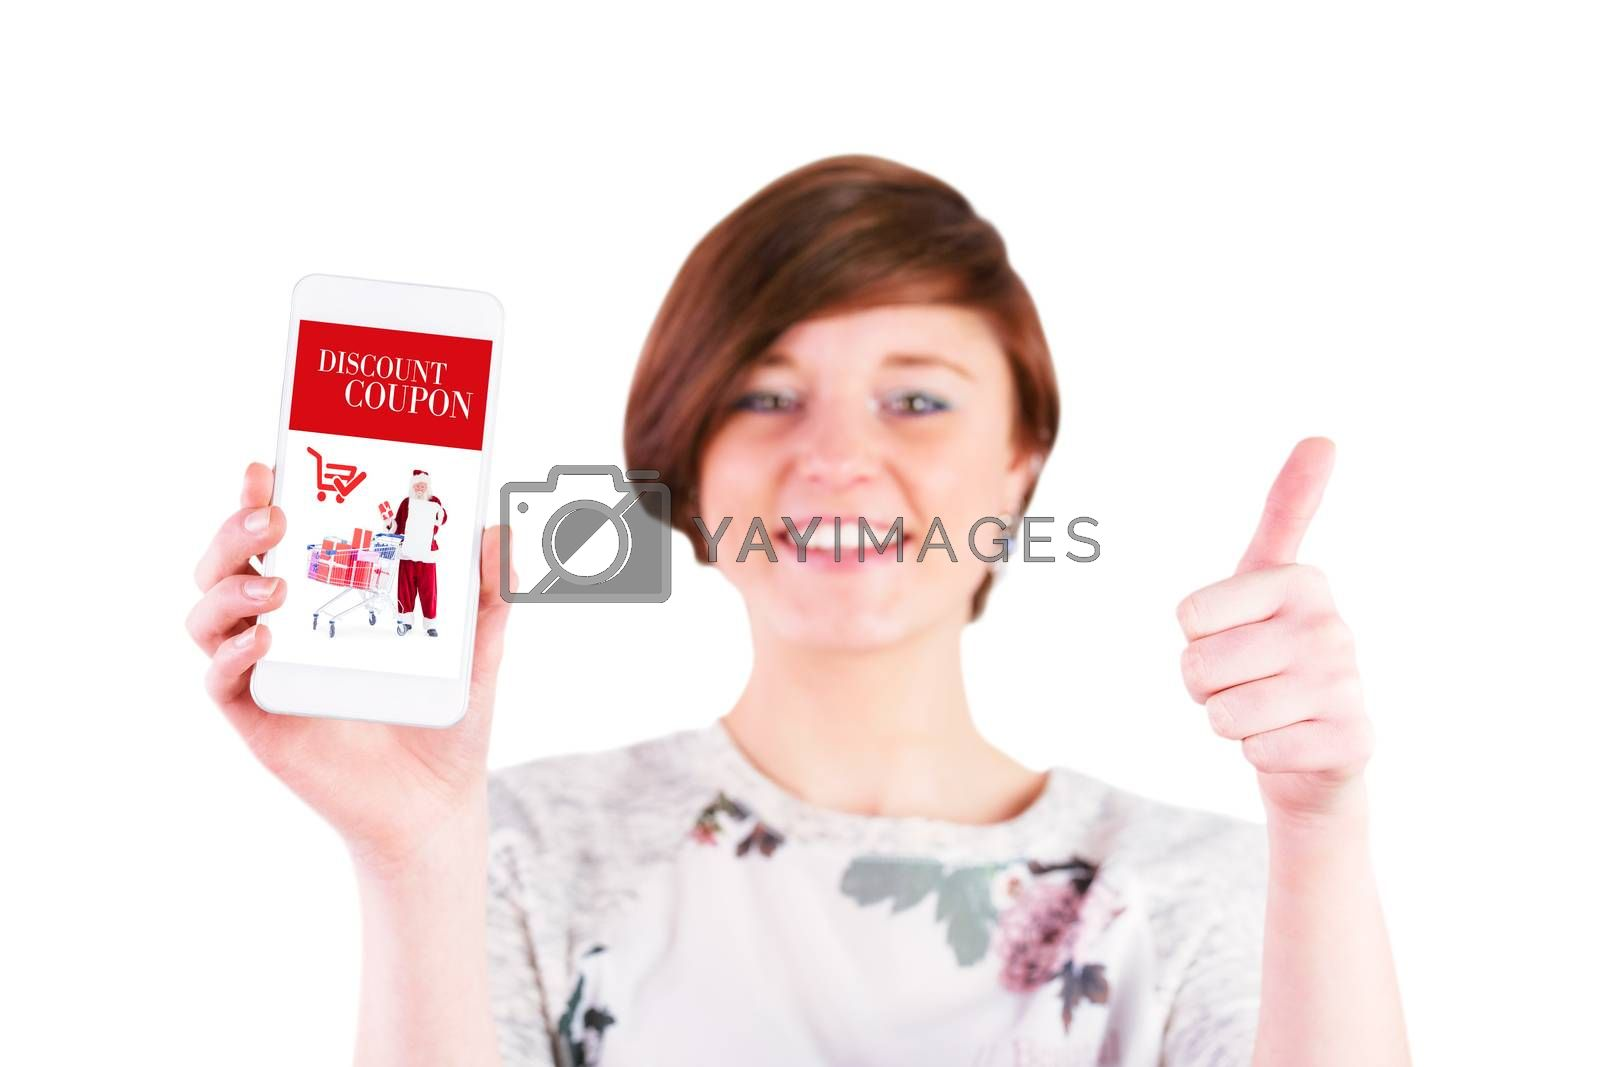 Happy woman gesturing thumbs up while showing smart phone against sale advertisement